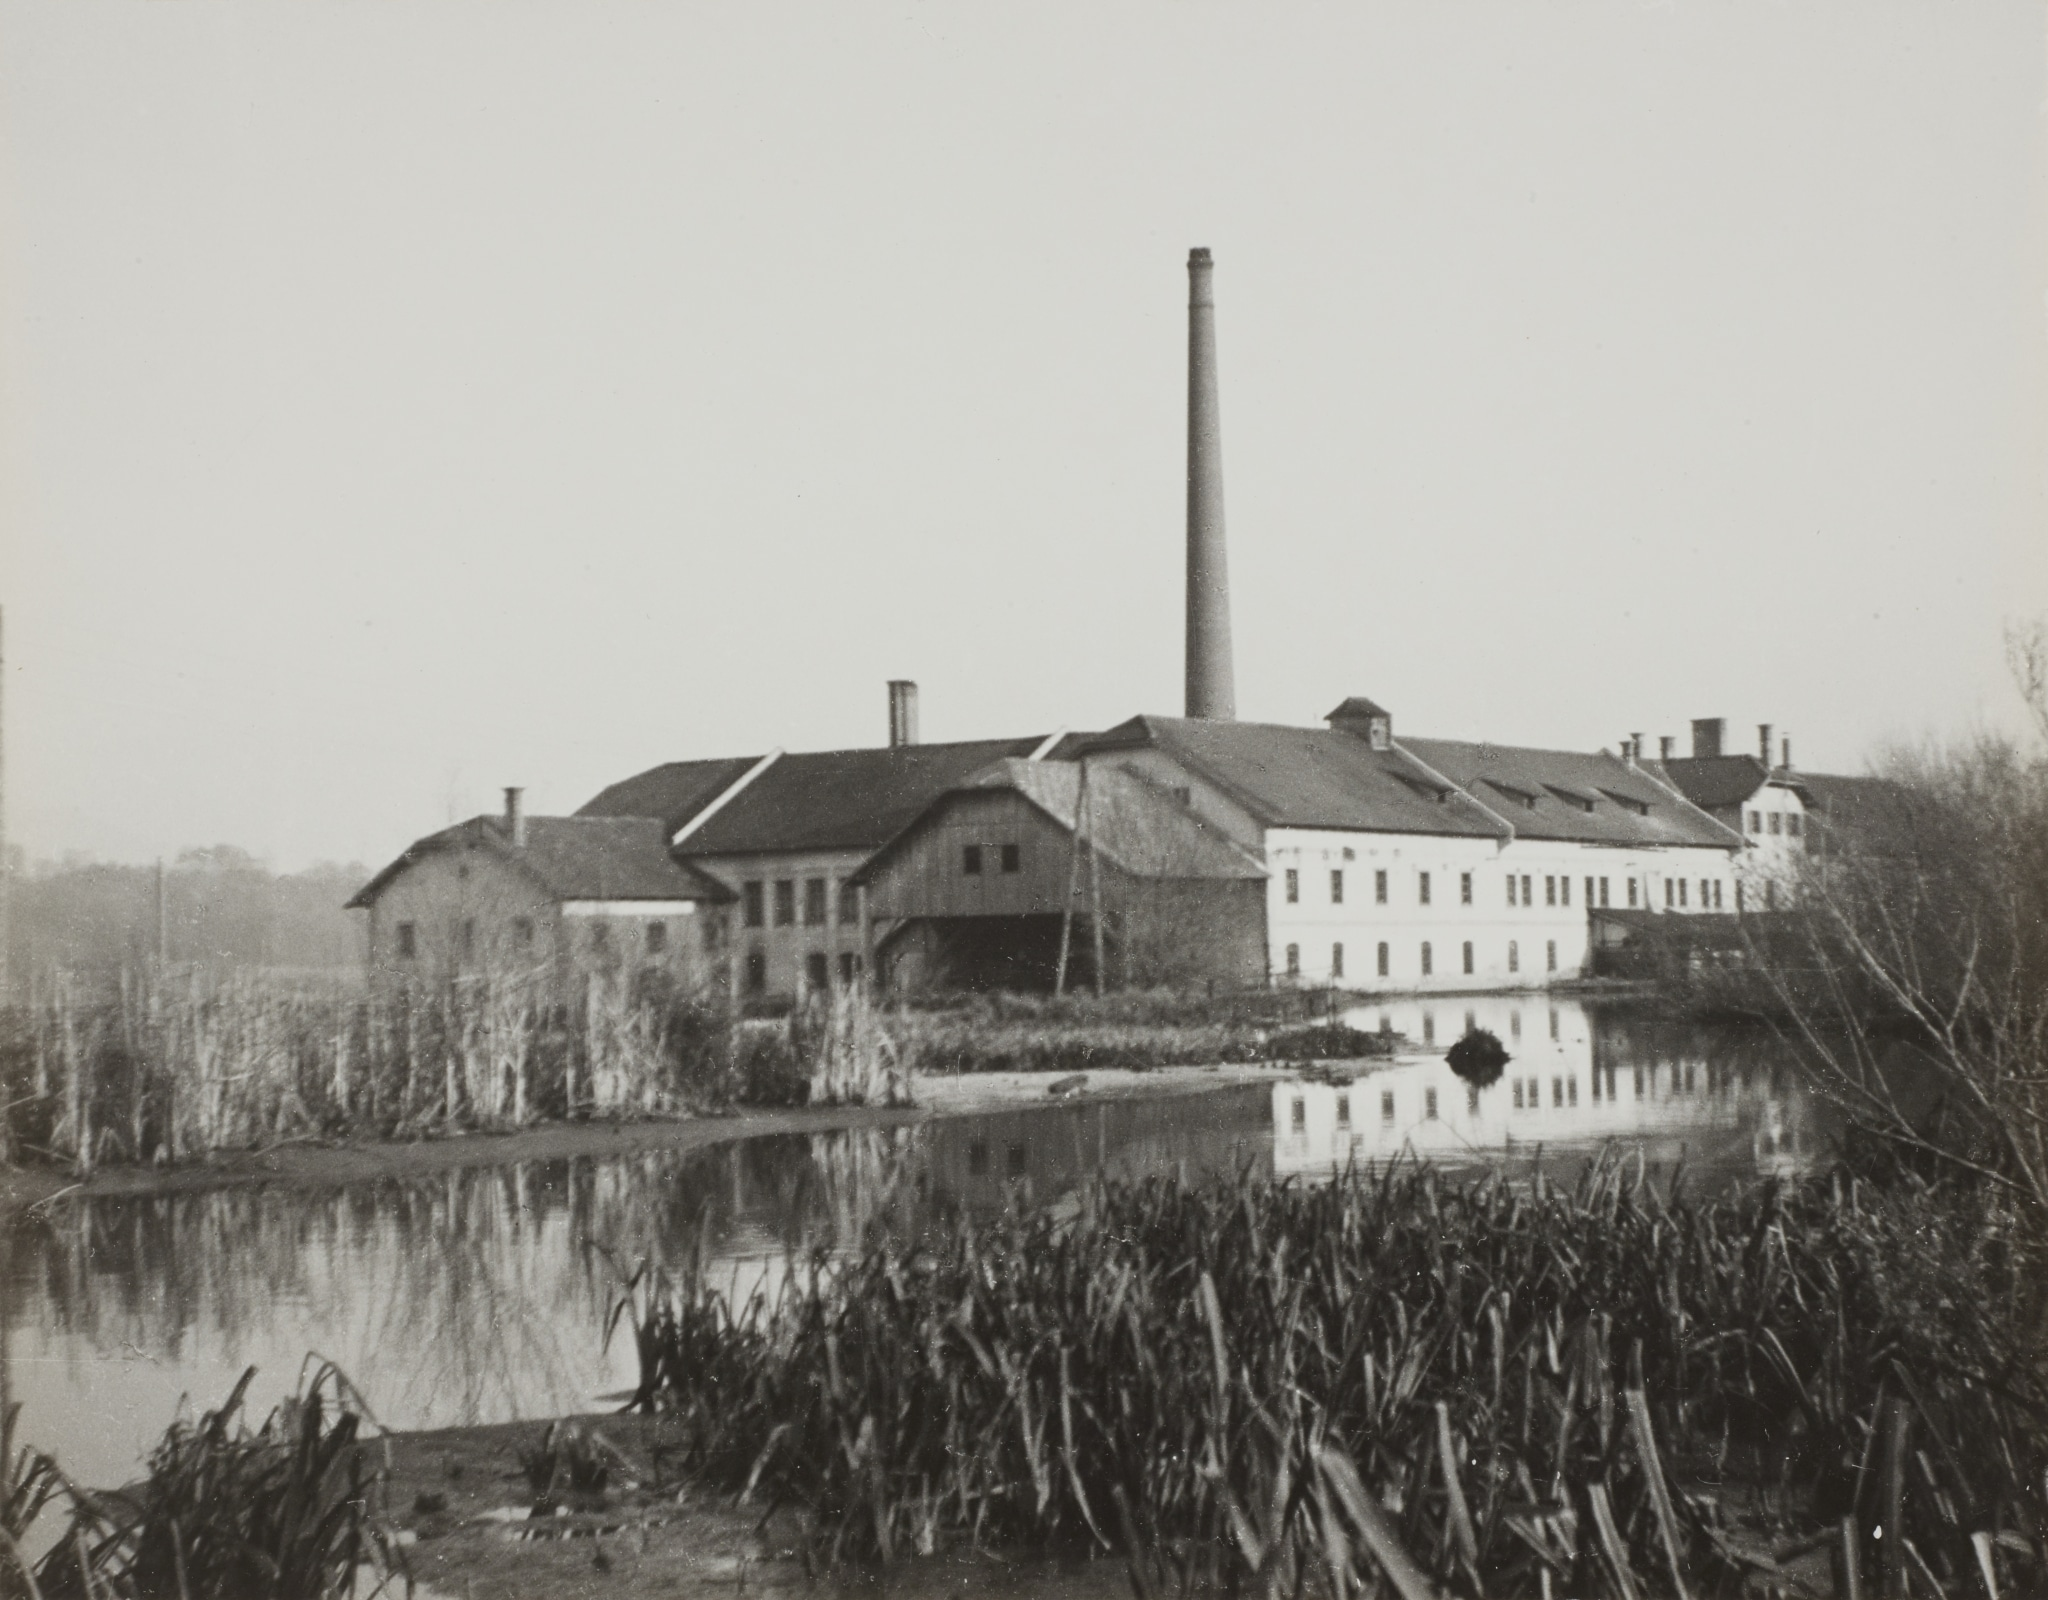 Historical tannery